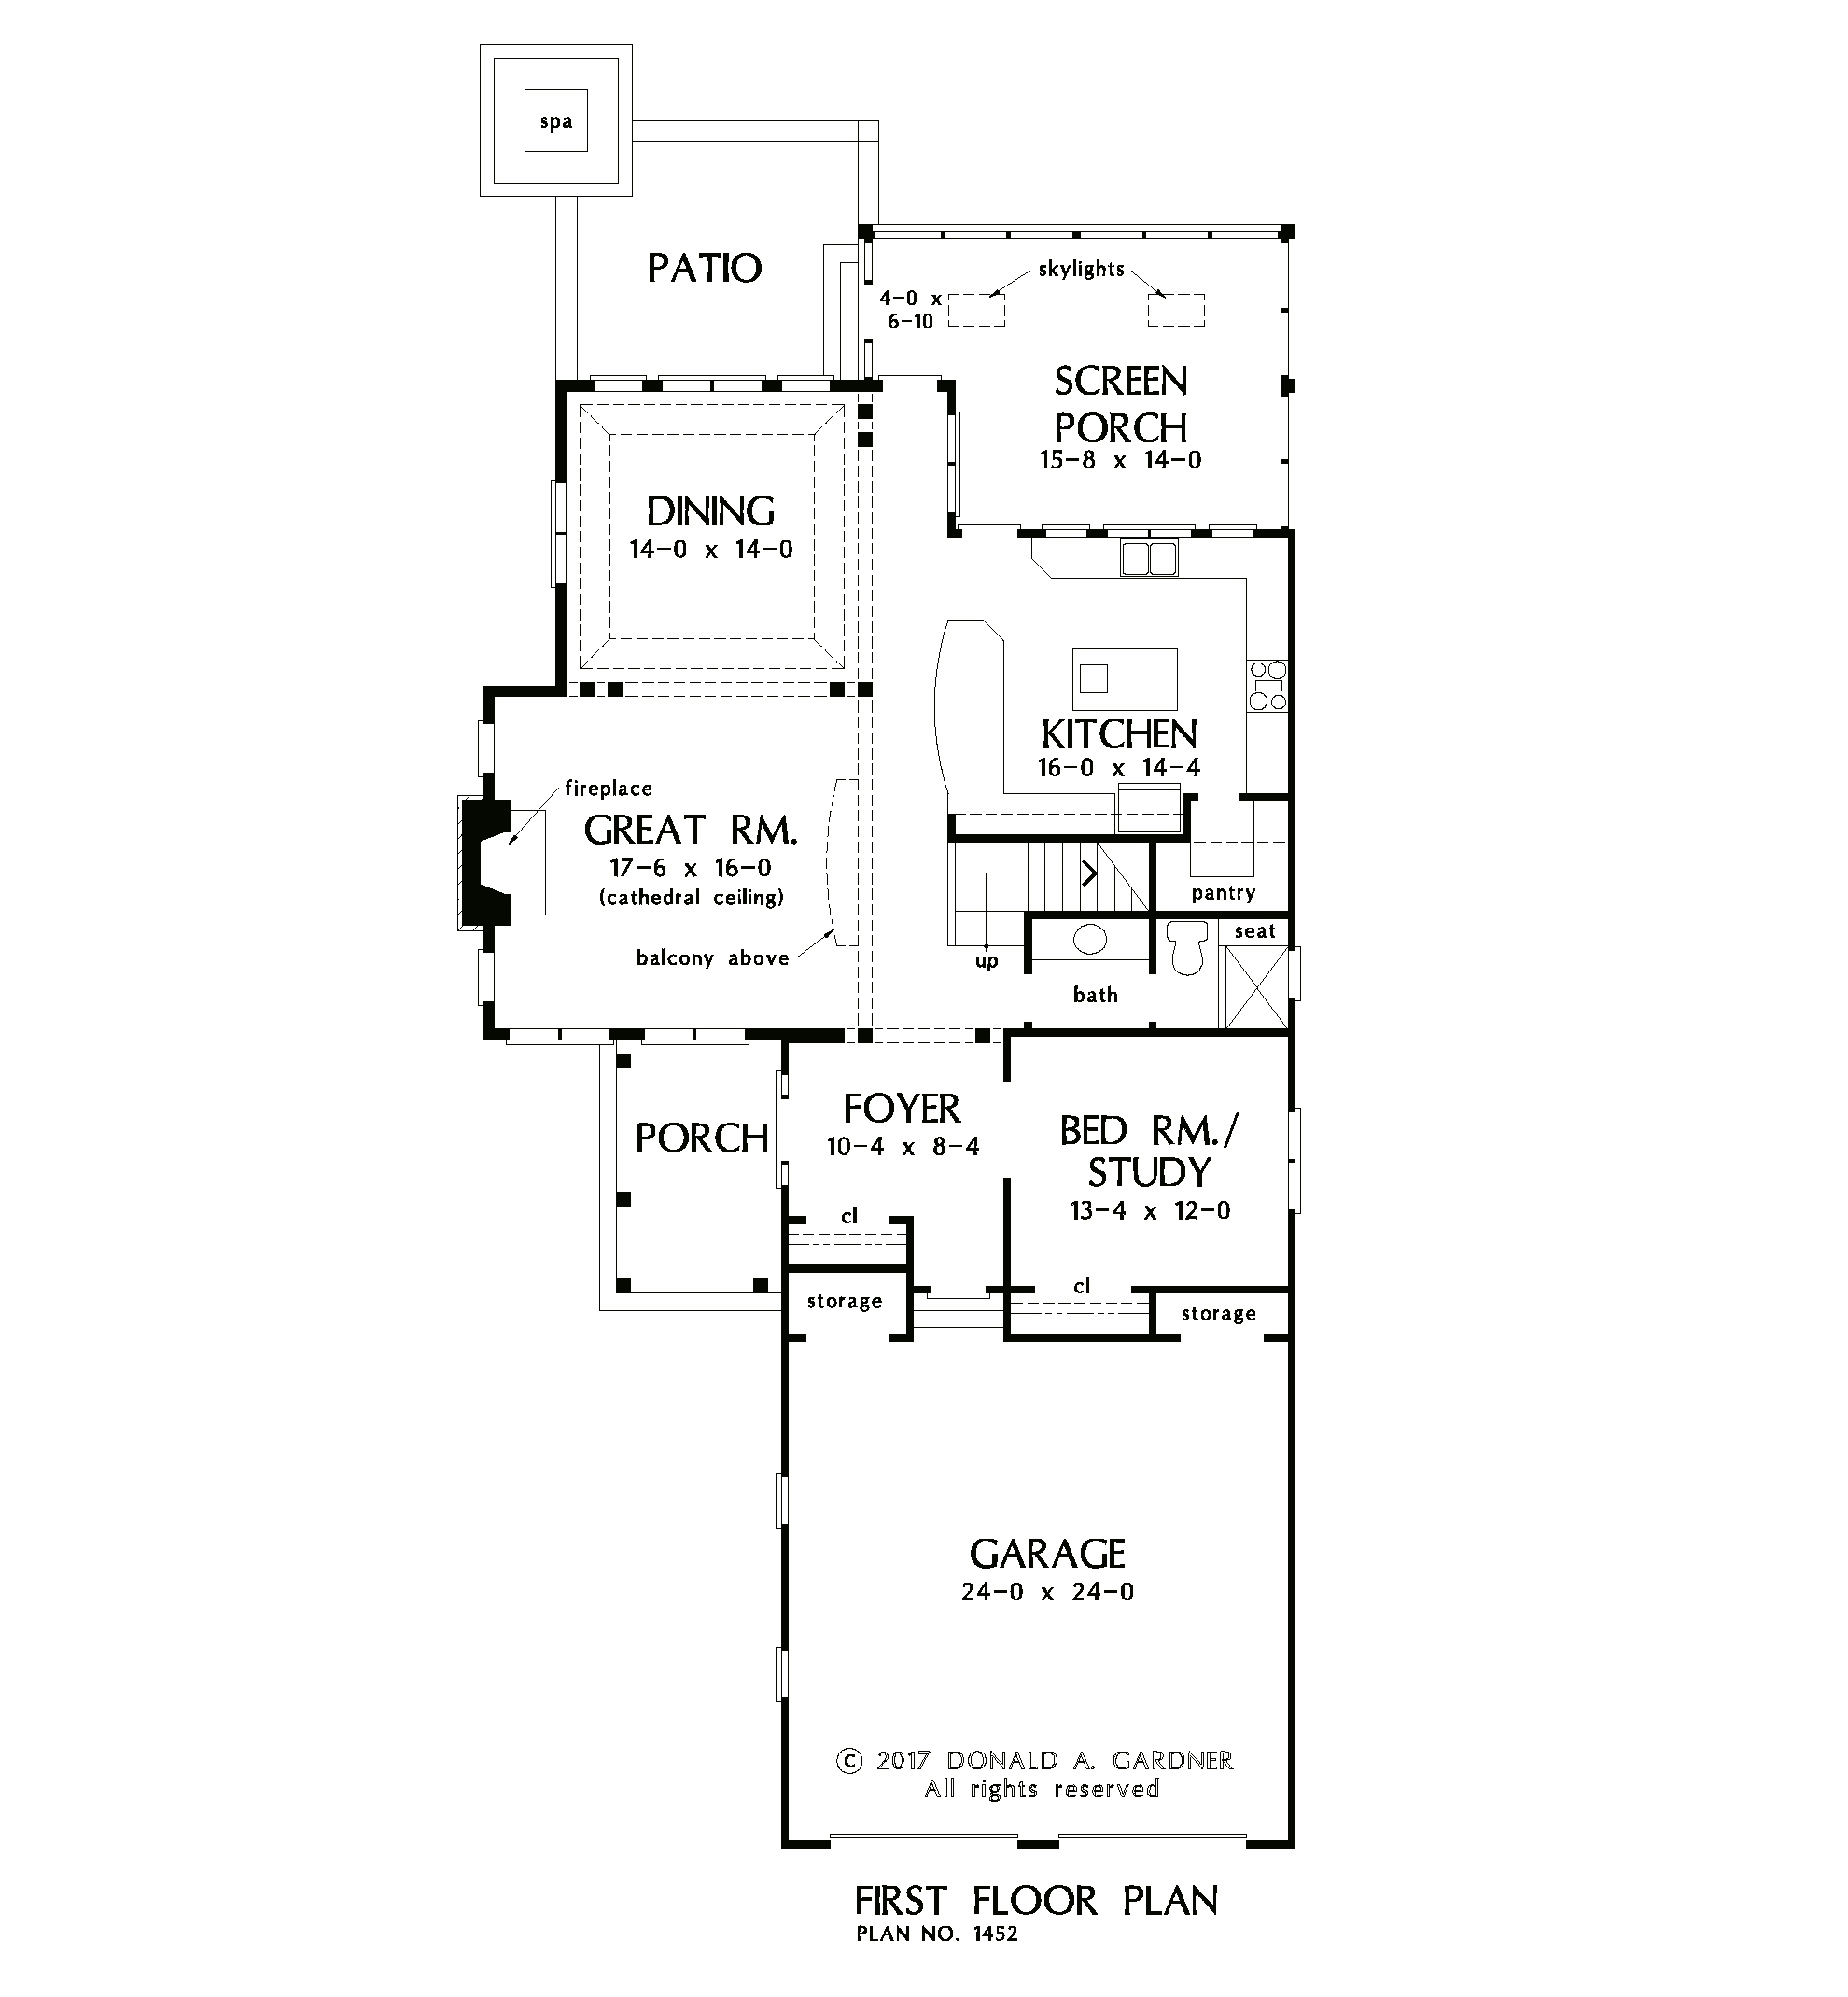 Check out the first floor plan of The Astrid, house plan 1452.